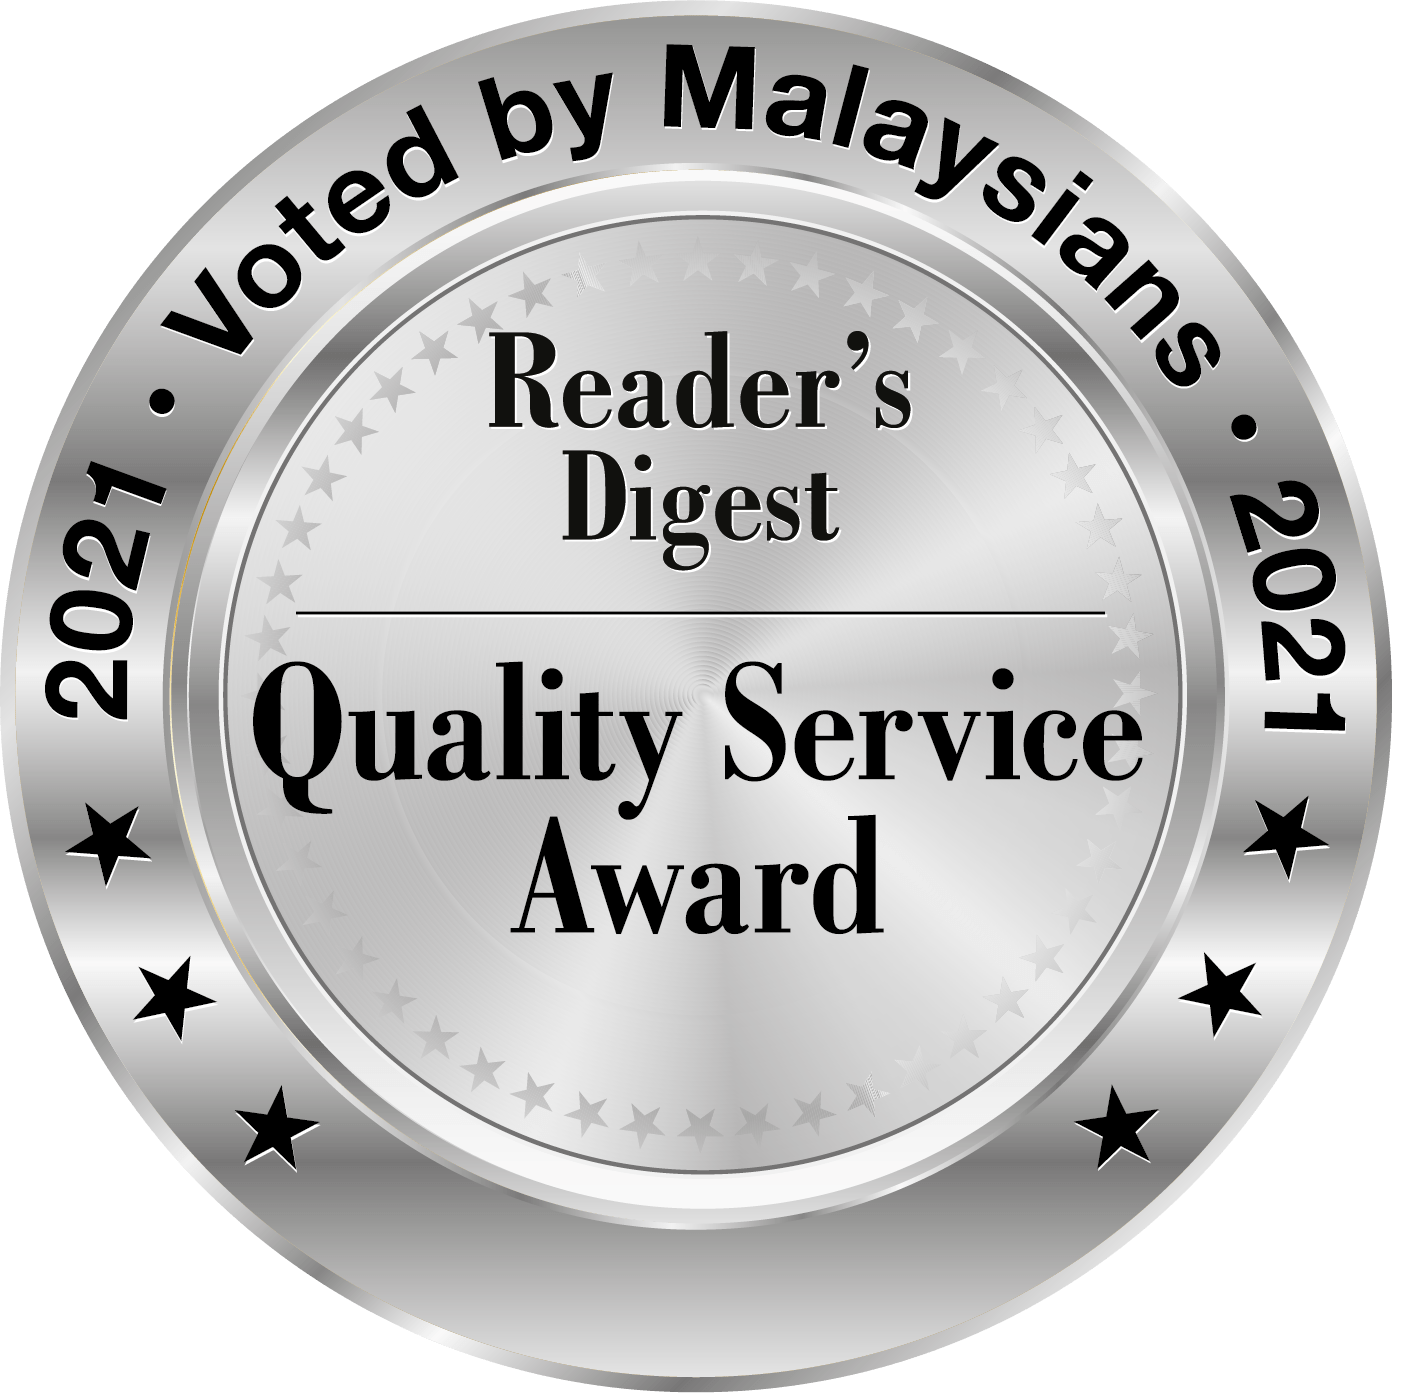 Reader's Digest Quality Service Award Asia 2021